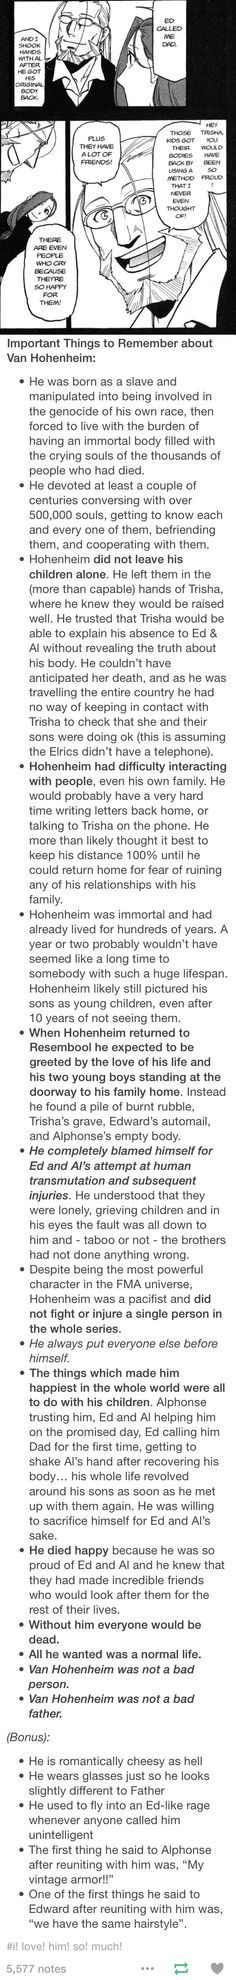 Van Hohenheim facts << Here's the full post. <<< This is why he's one of my favorite characters